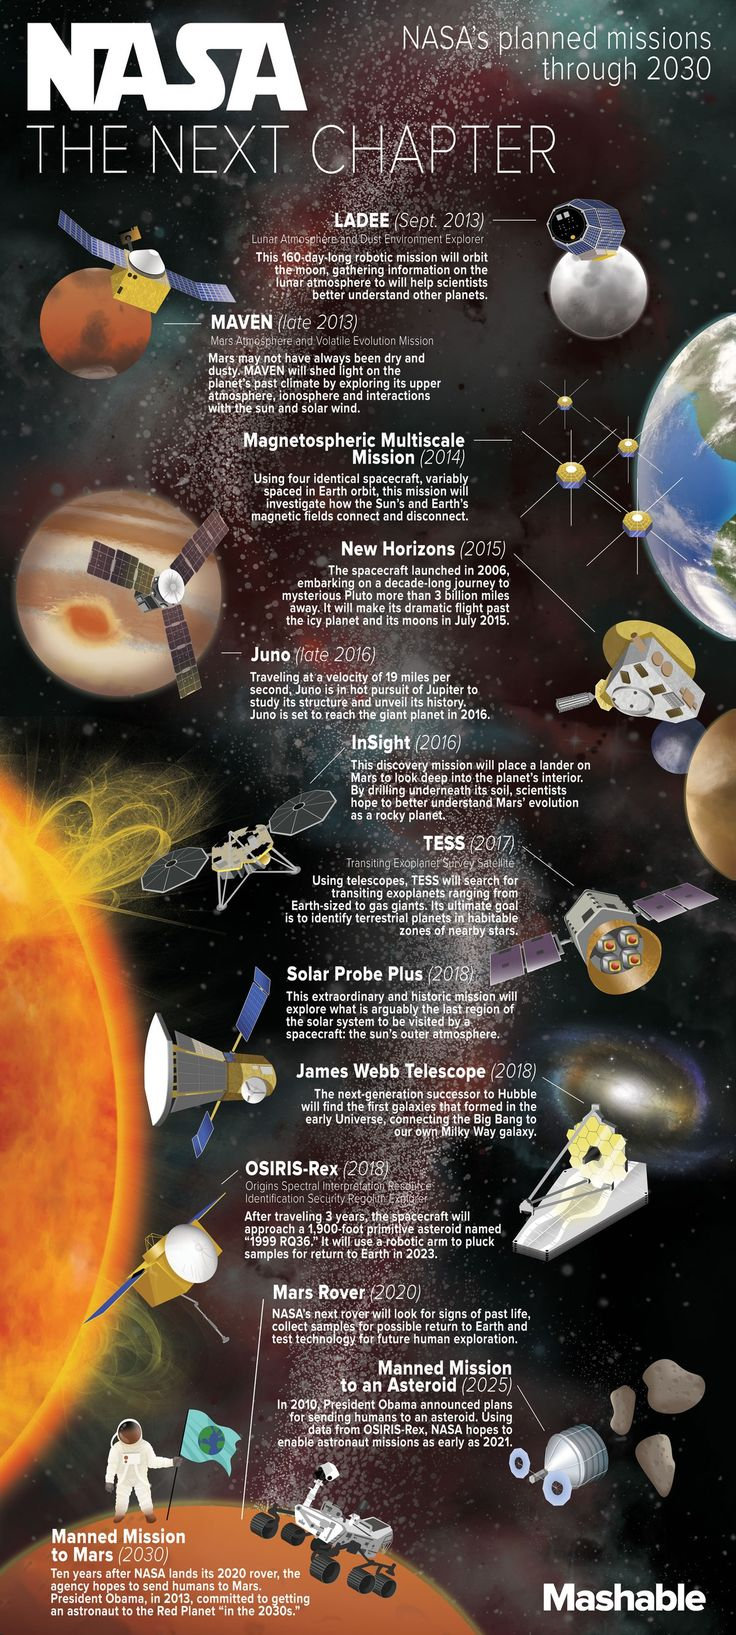 What's Next for NASA: Planned Missions Through 2030